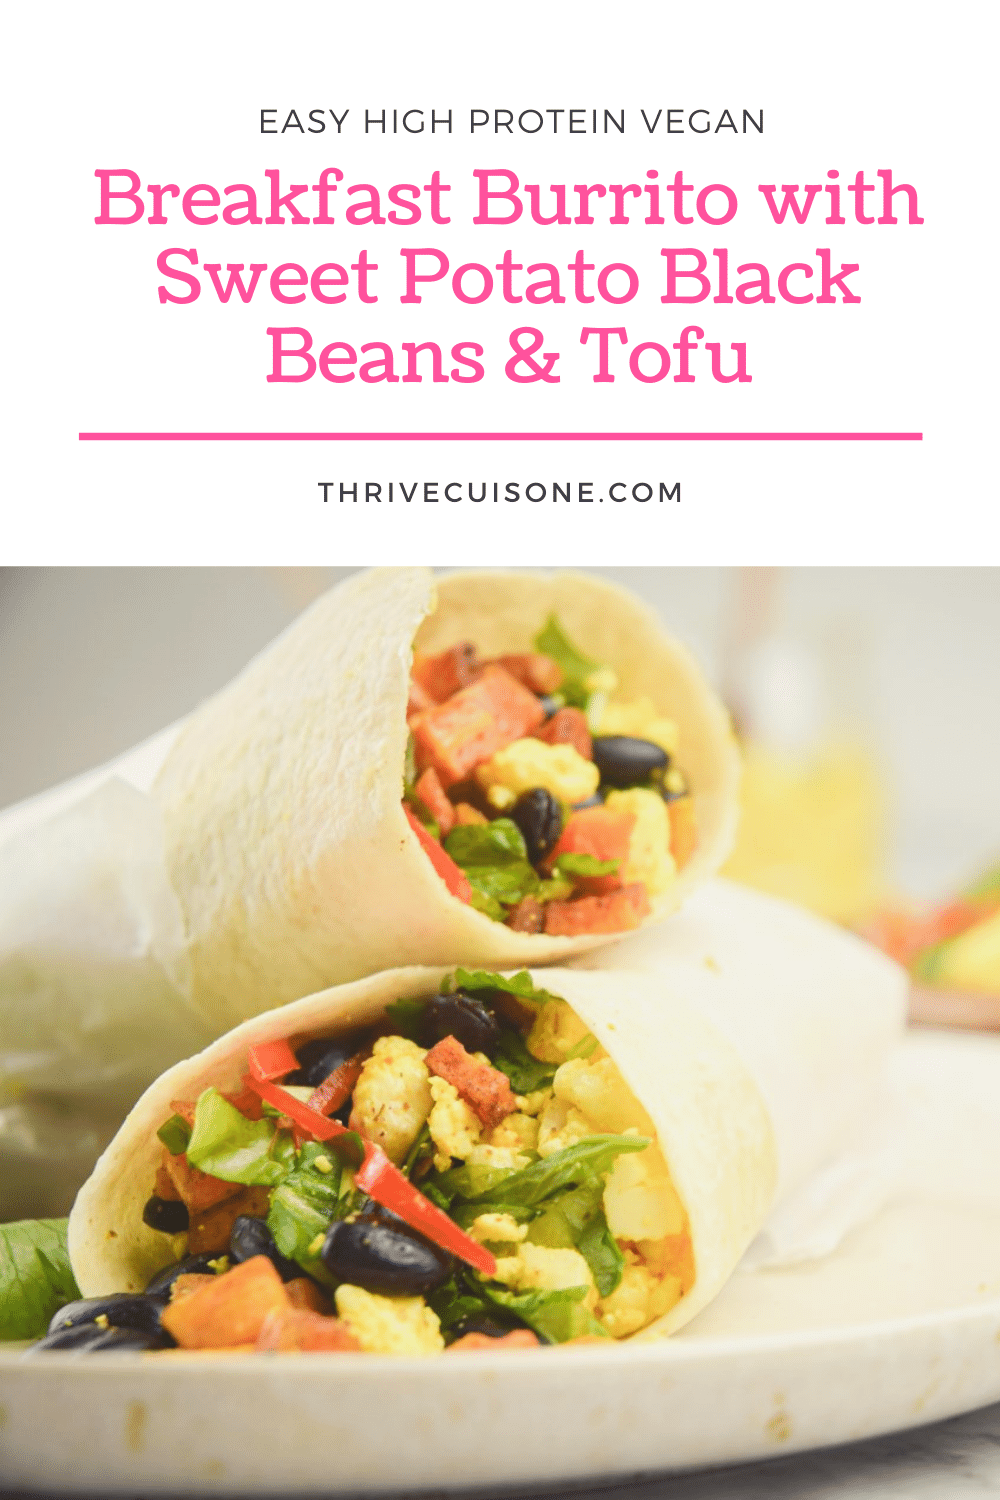 Easy High Protein Vegan Breakfast Burrito With Sweet Potato Black Beans Tofu In 2020 High Protein Vegan Breakfast Vegan Breakfast Burrito Quick Vegan Meals